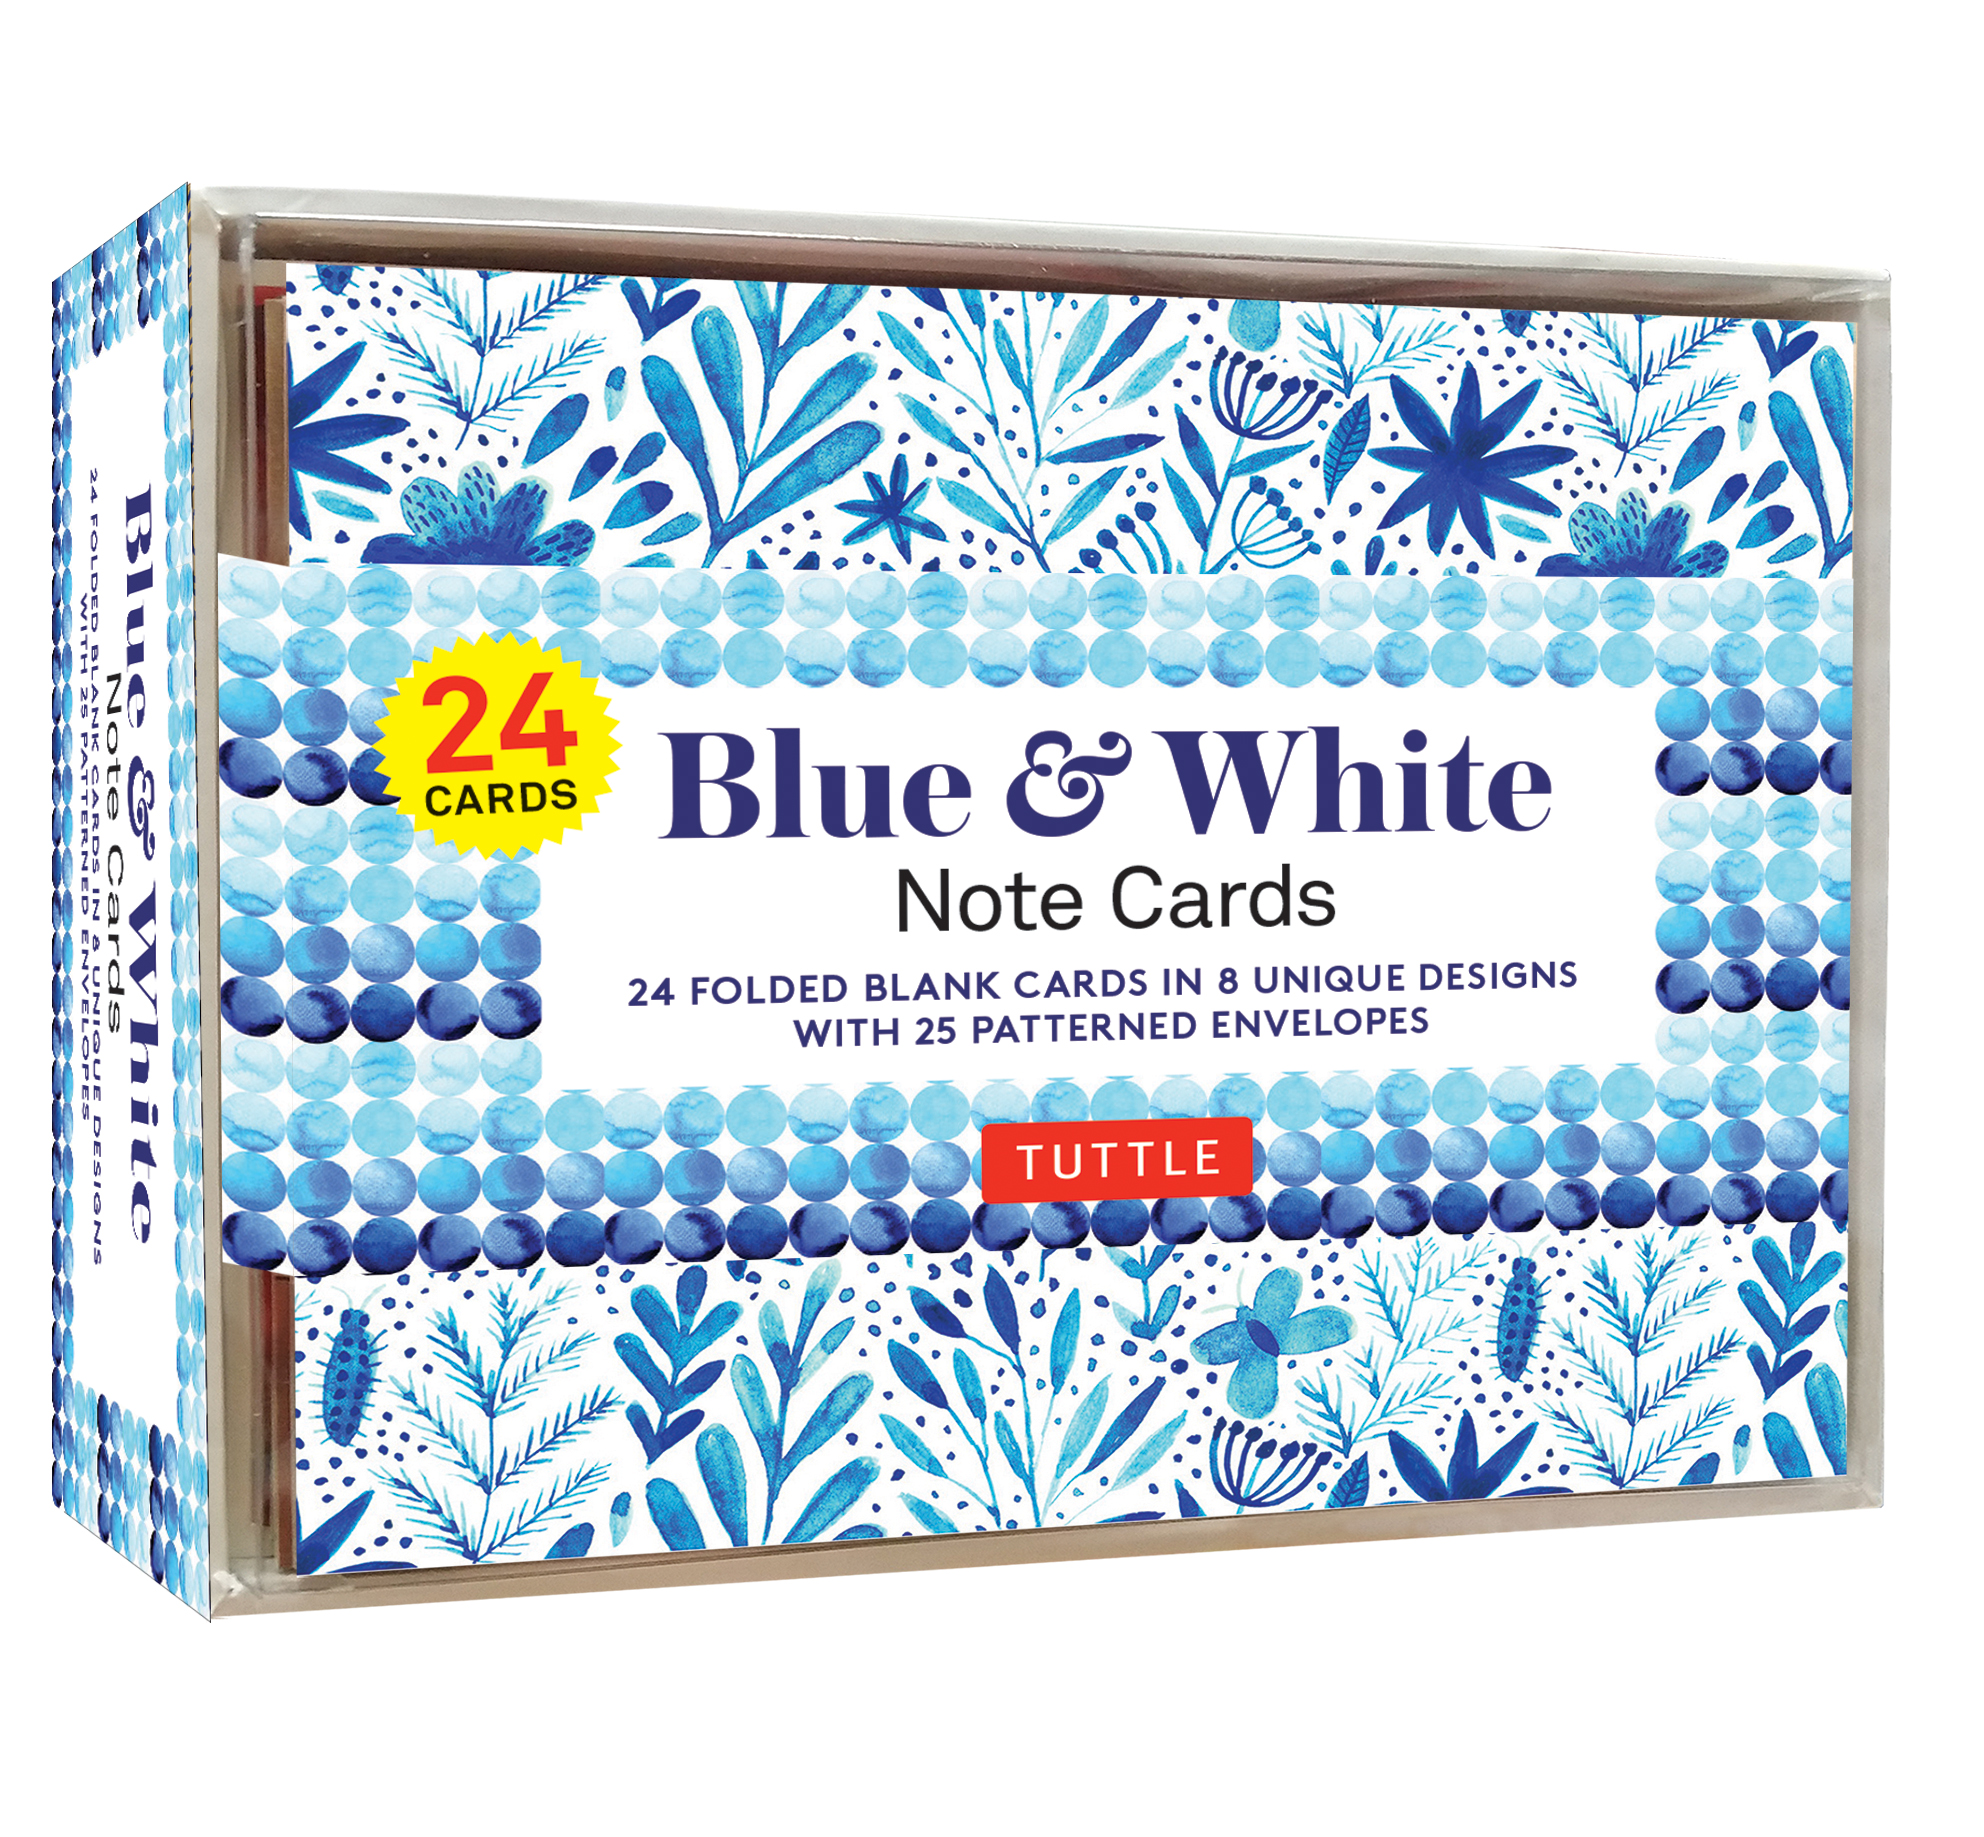 Blue & White Note Cards - 24 Cards